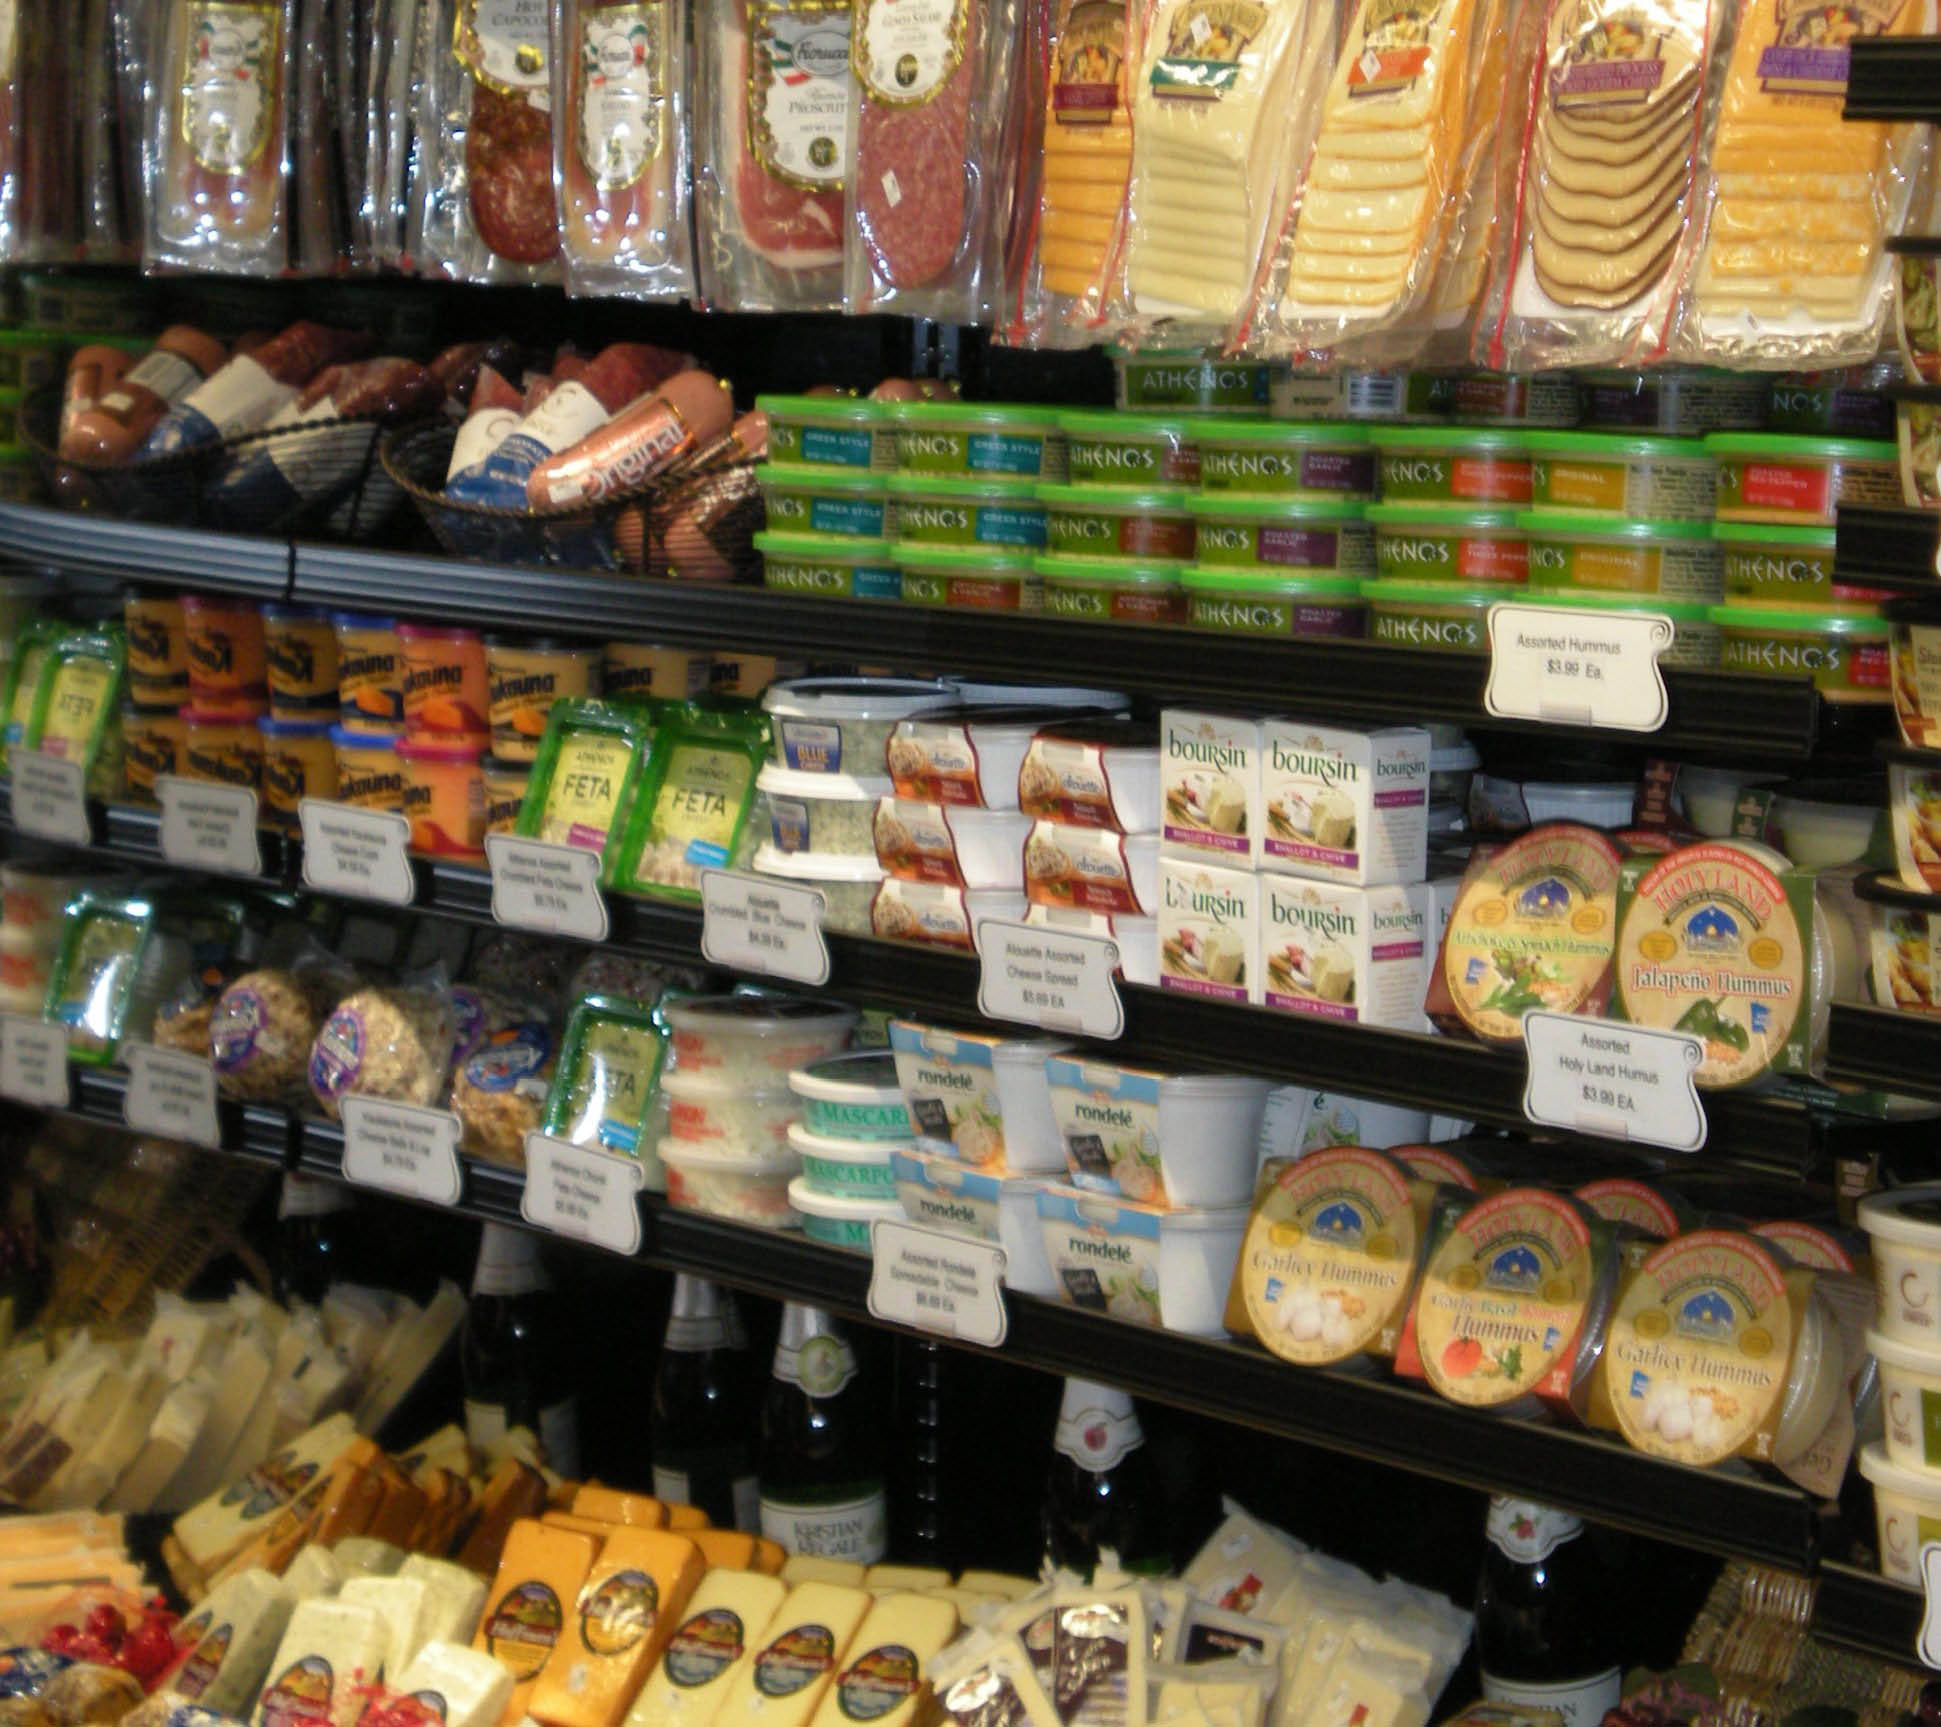 Deli featuring meats, cheeses and fresh salads